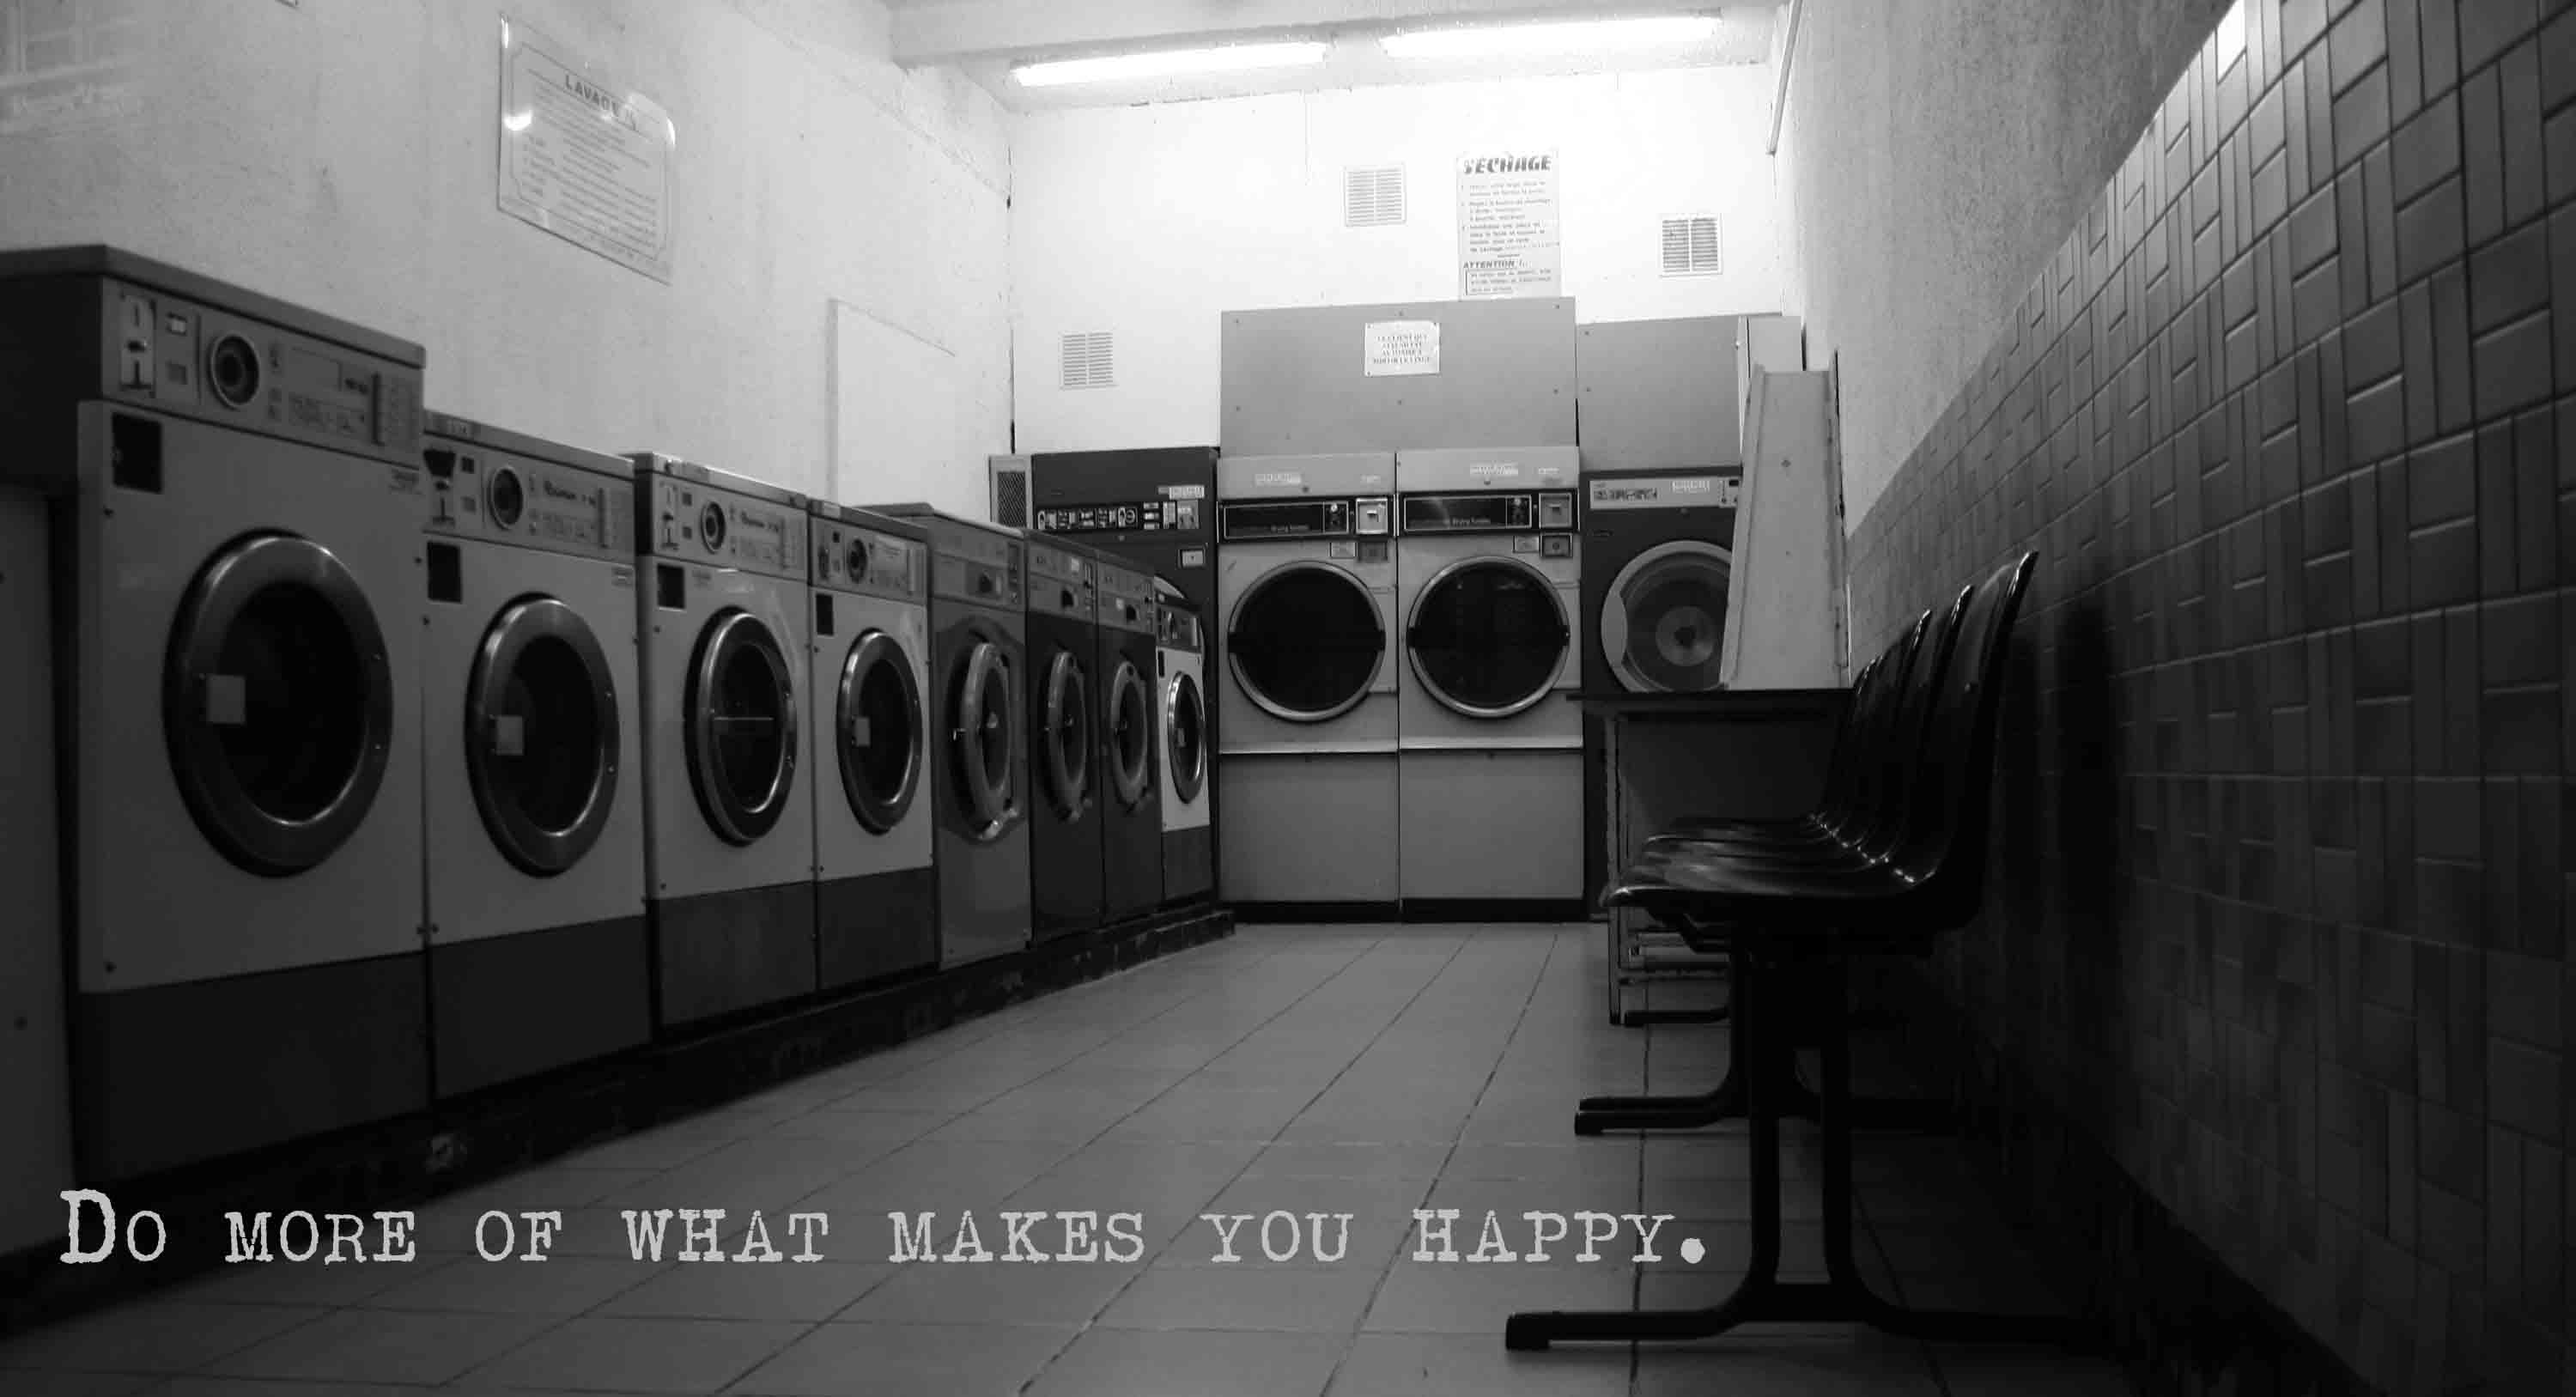 do more of what makes you happy visual statement